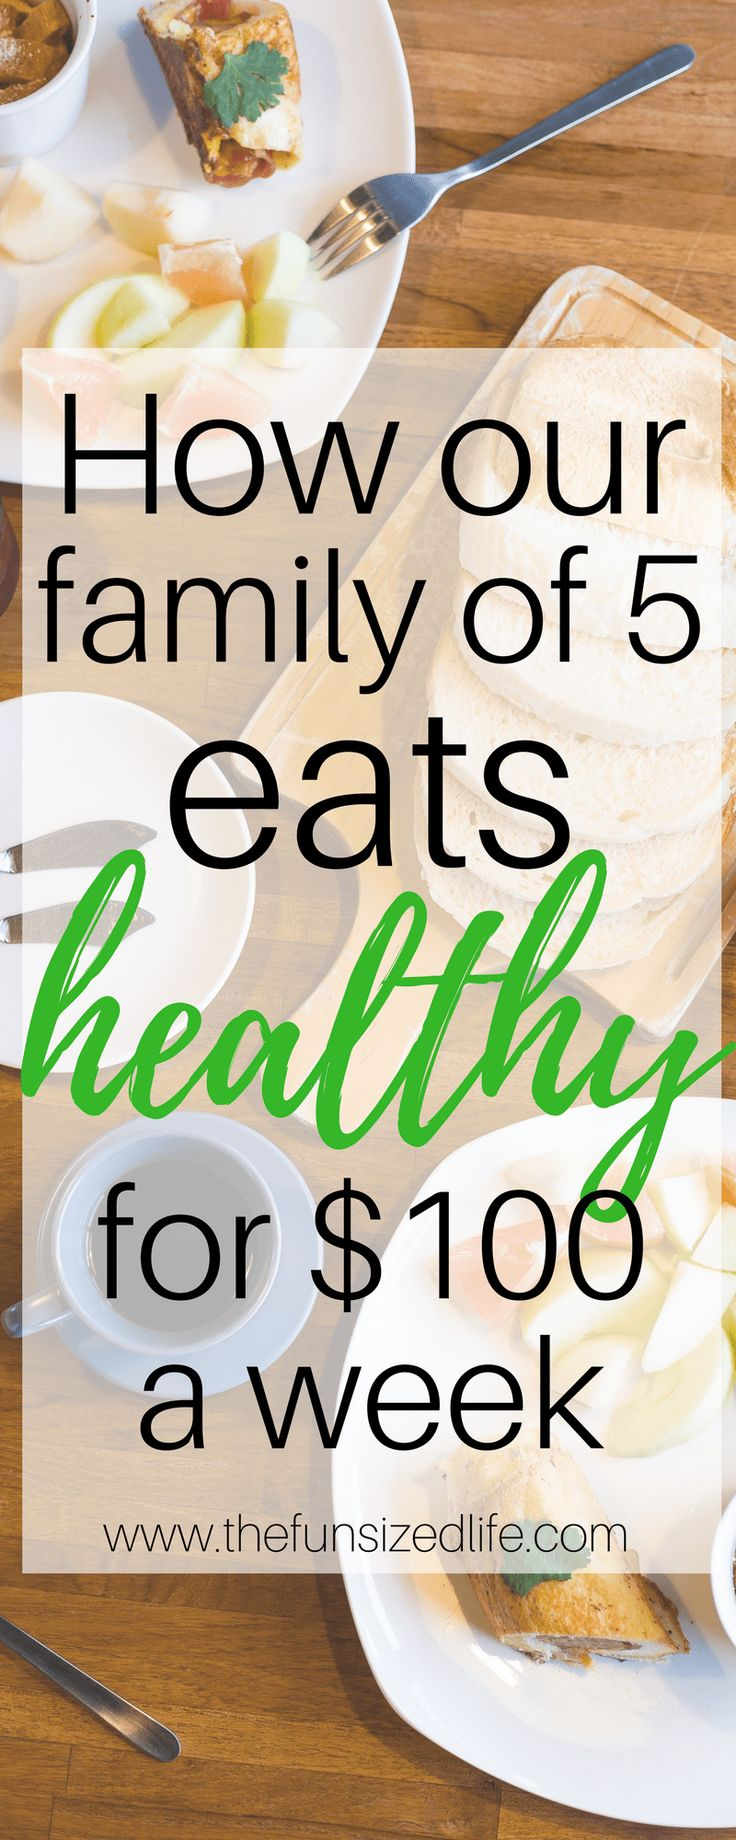 family of 5 eats healthy for $100 a week, eating on a budget, feeding a family on a budget, healthy eating for less, how to eat healthy on a budget, spend less grocery shopping, grocery shopping on a budget, feed a family healthy